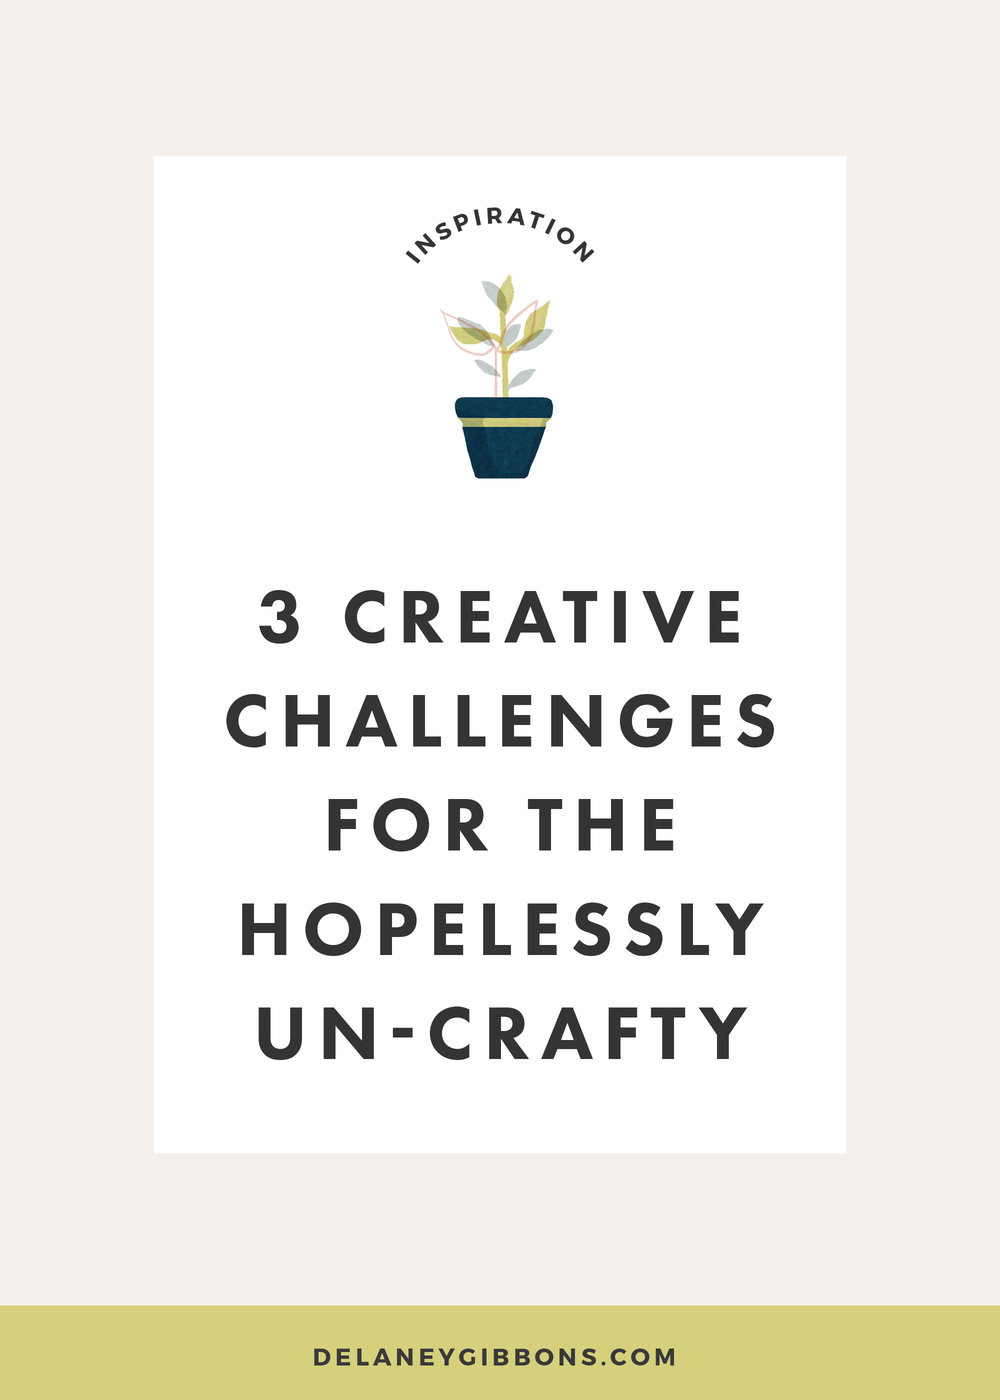 3 Creative Challenges for the Hopelessly Un-crafty — from Delaney Gibbons Studio